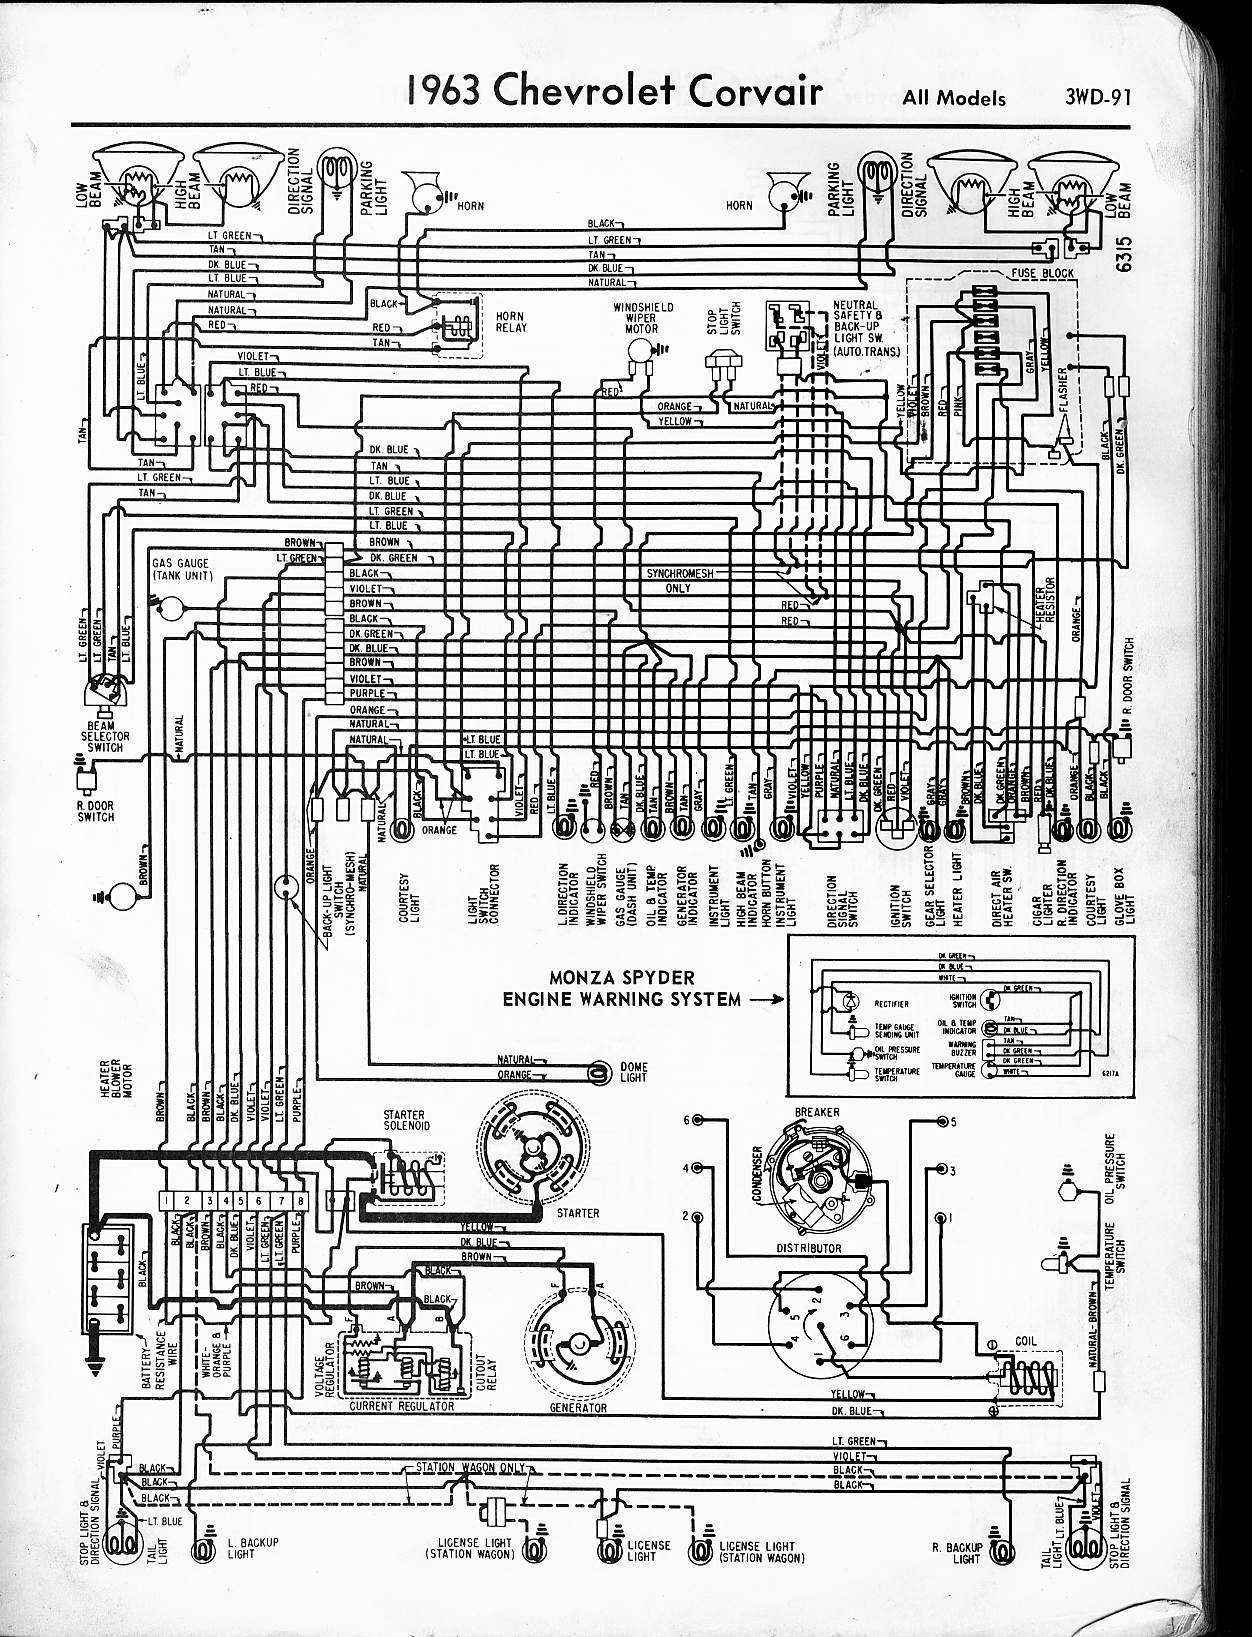 MWireChev63_3WD 091 57 65 chevy wiring diagrams 1963 impala electrical diagram at soozxer.org